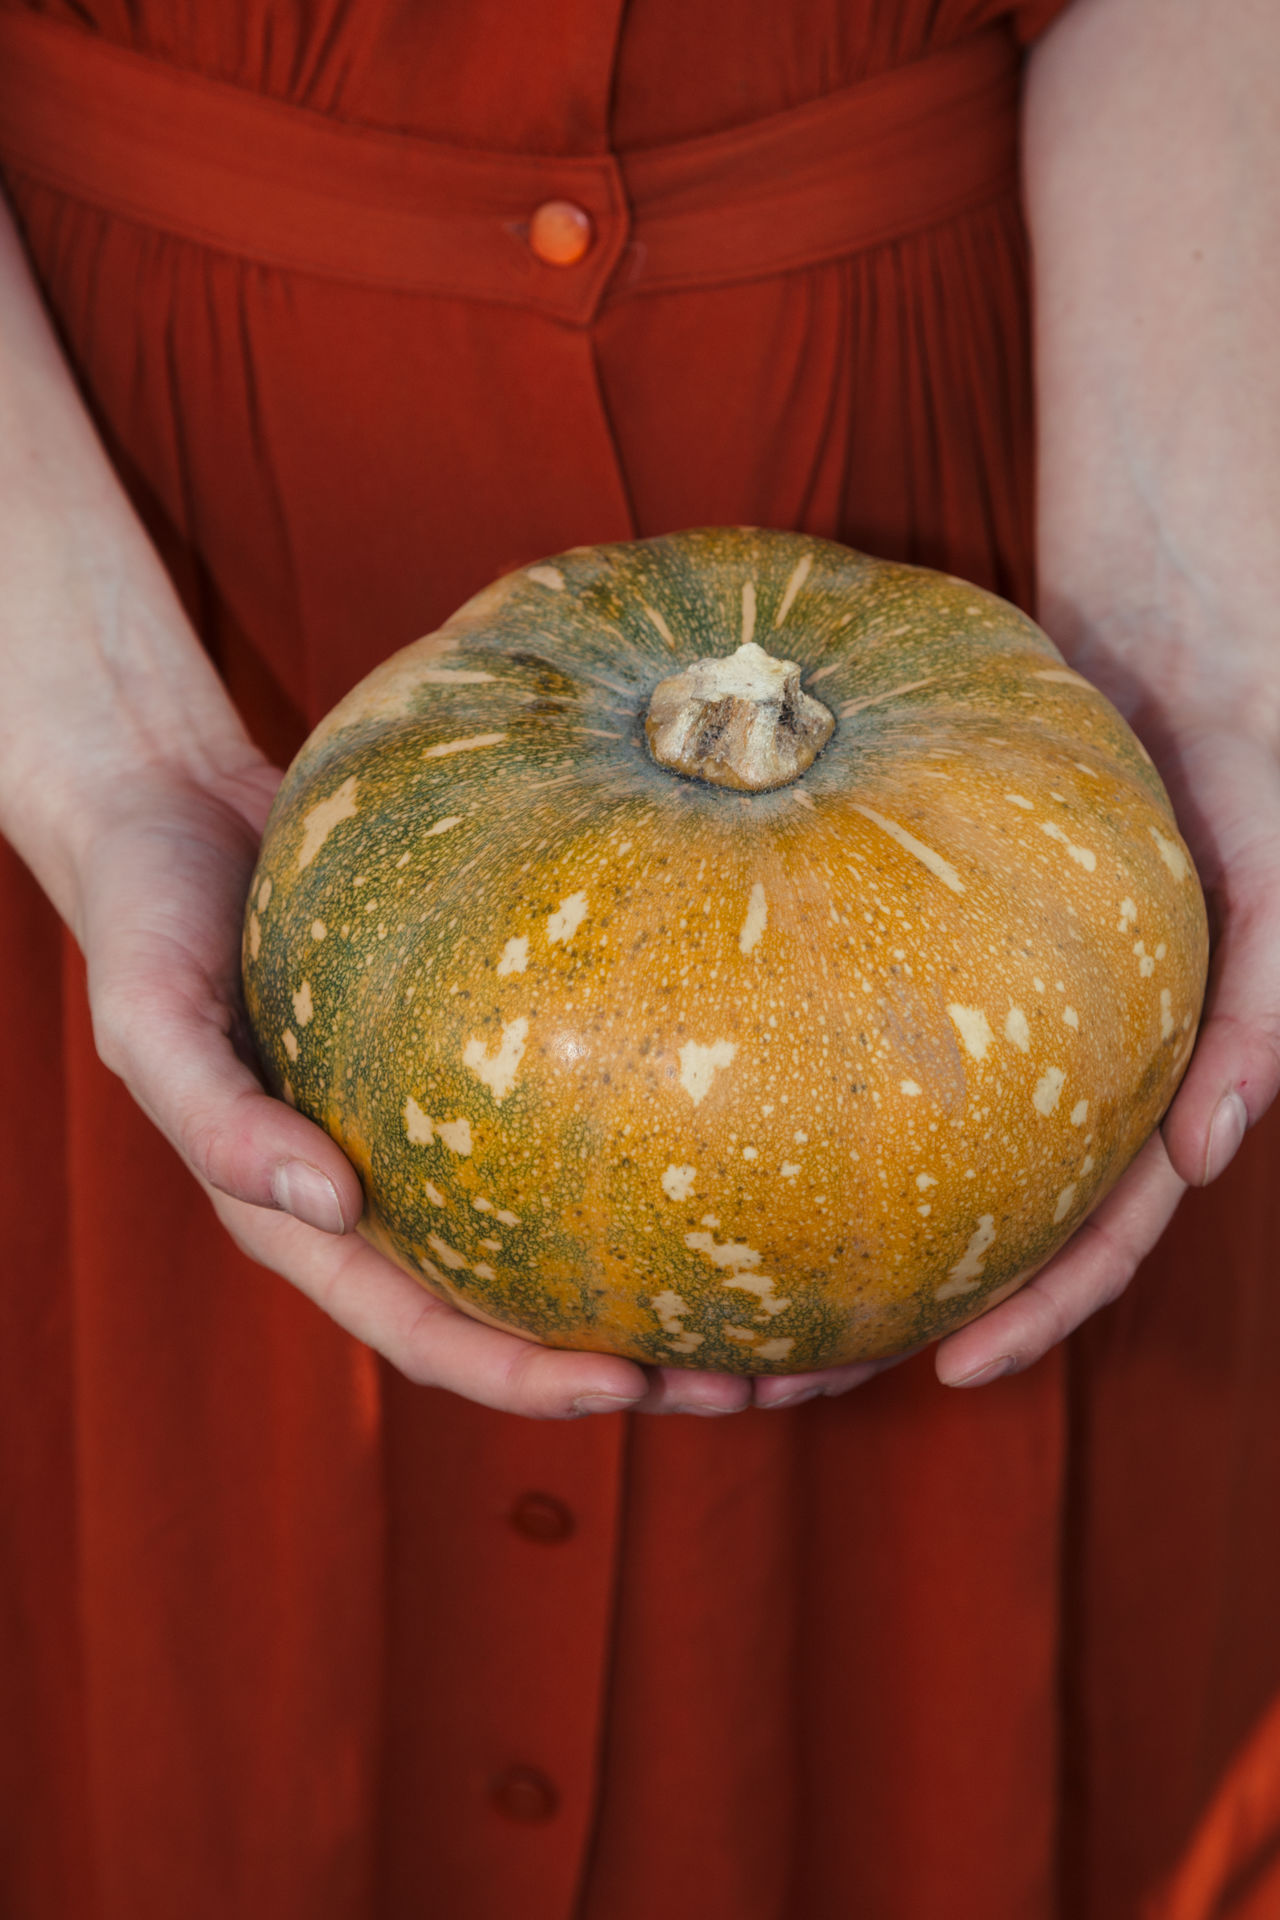 Adult Autumn Close-up Day Fall Food Food And Drink Freshness Fruit Halloween Halloween Healthy Eating Holding Human Body Part Human Hand Indoors  Midsection One Person People Pumpkin Real People Squash Standing